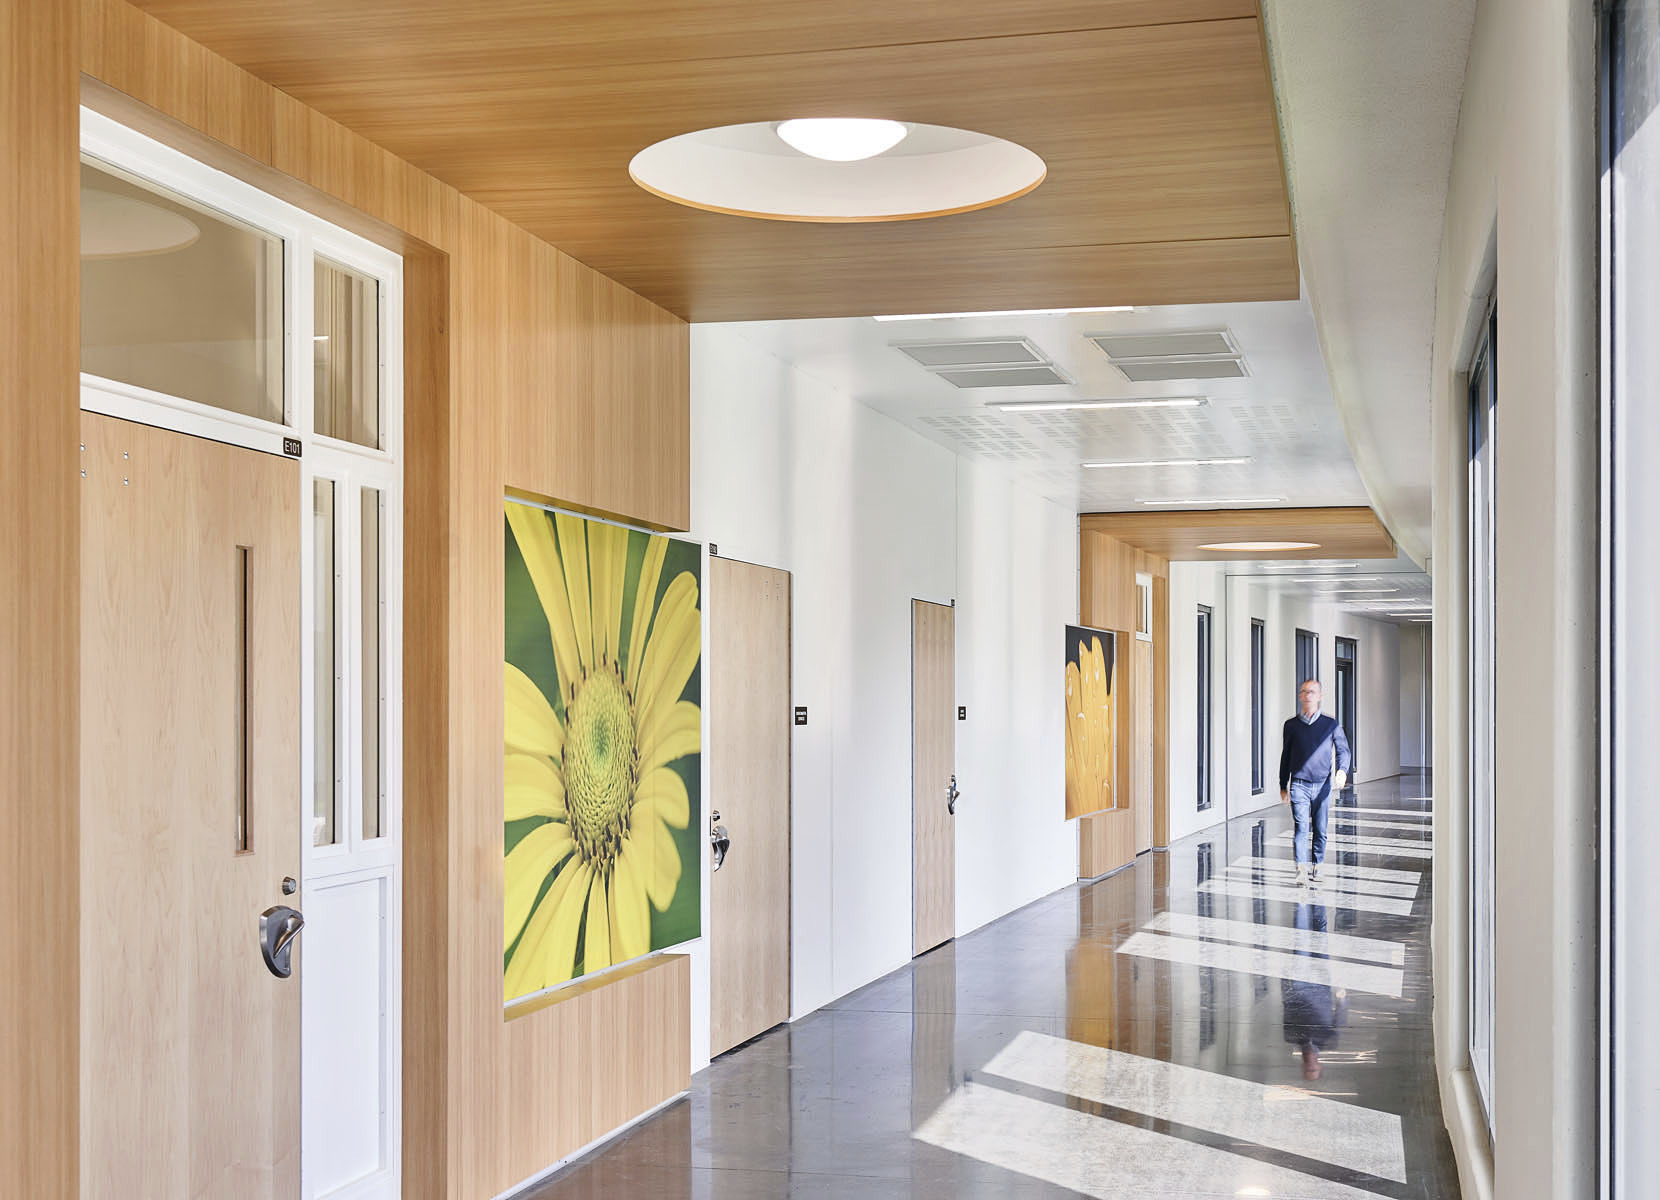 light-filled hallways at the Nixon Forensic Center at Fulton State Hospital create a calm ambiance for patients